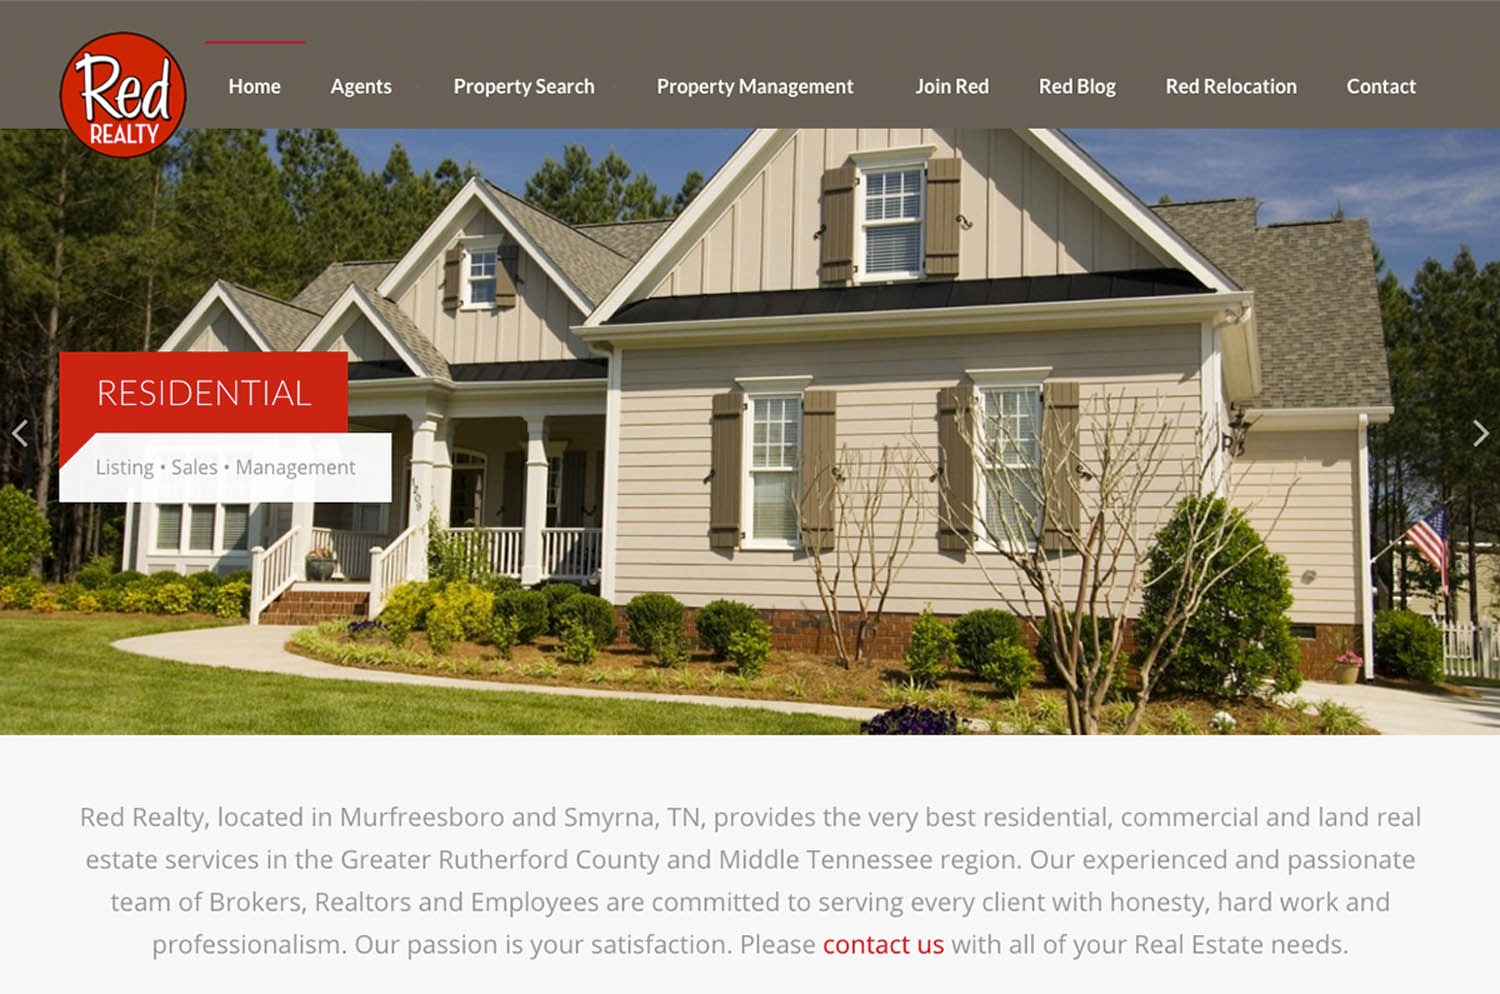 Red Realty. Murfreesboro, TN - Website Image